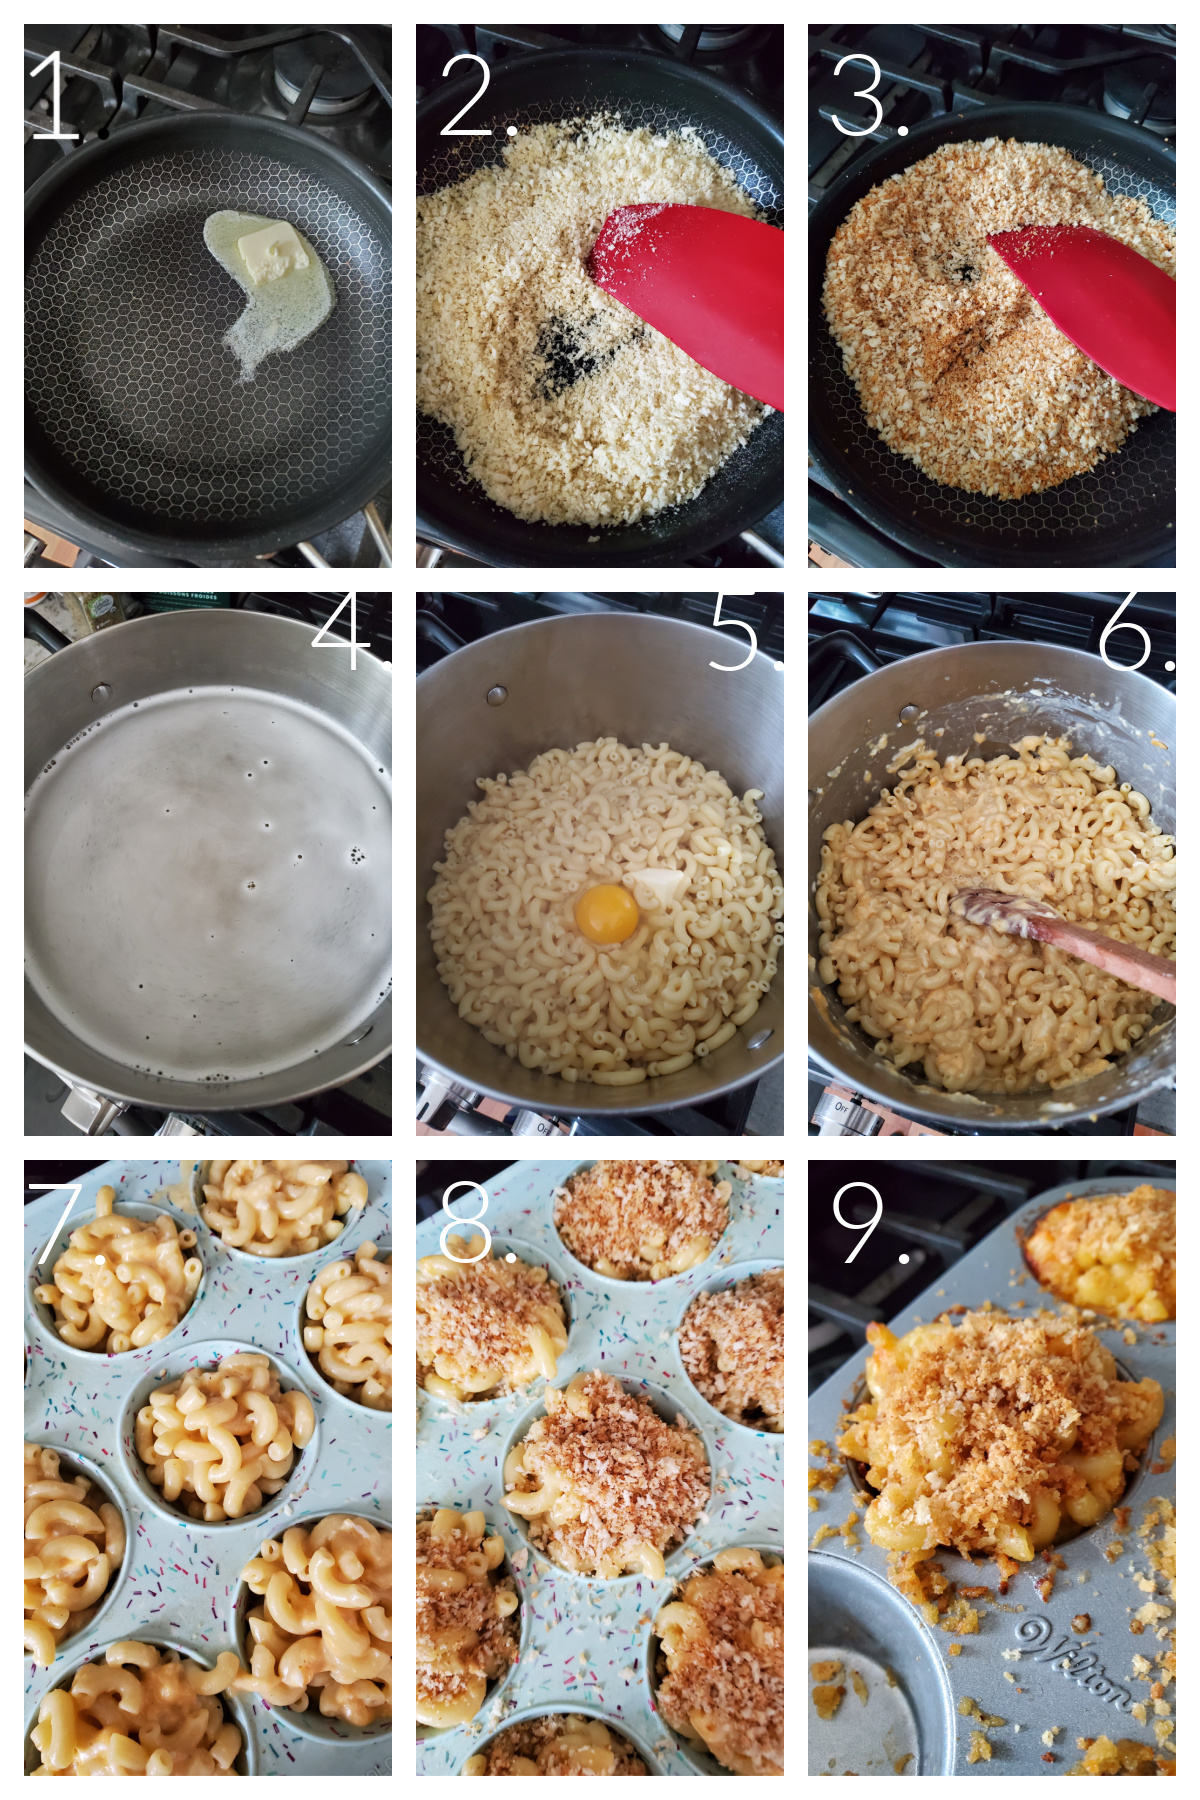 How to Make Muffin Pan Macaroni and Cheese. A visual 9-block guide to making macaroni and cheese in a muffin pan.